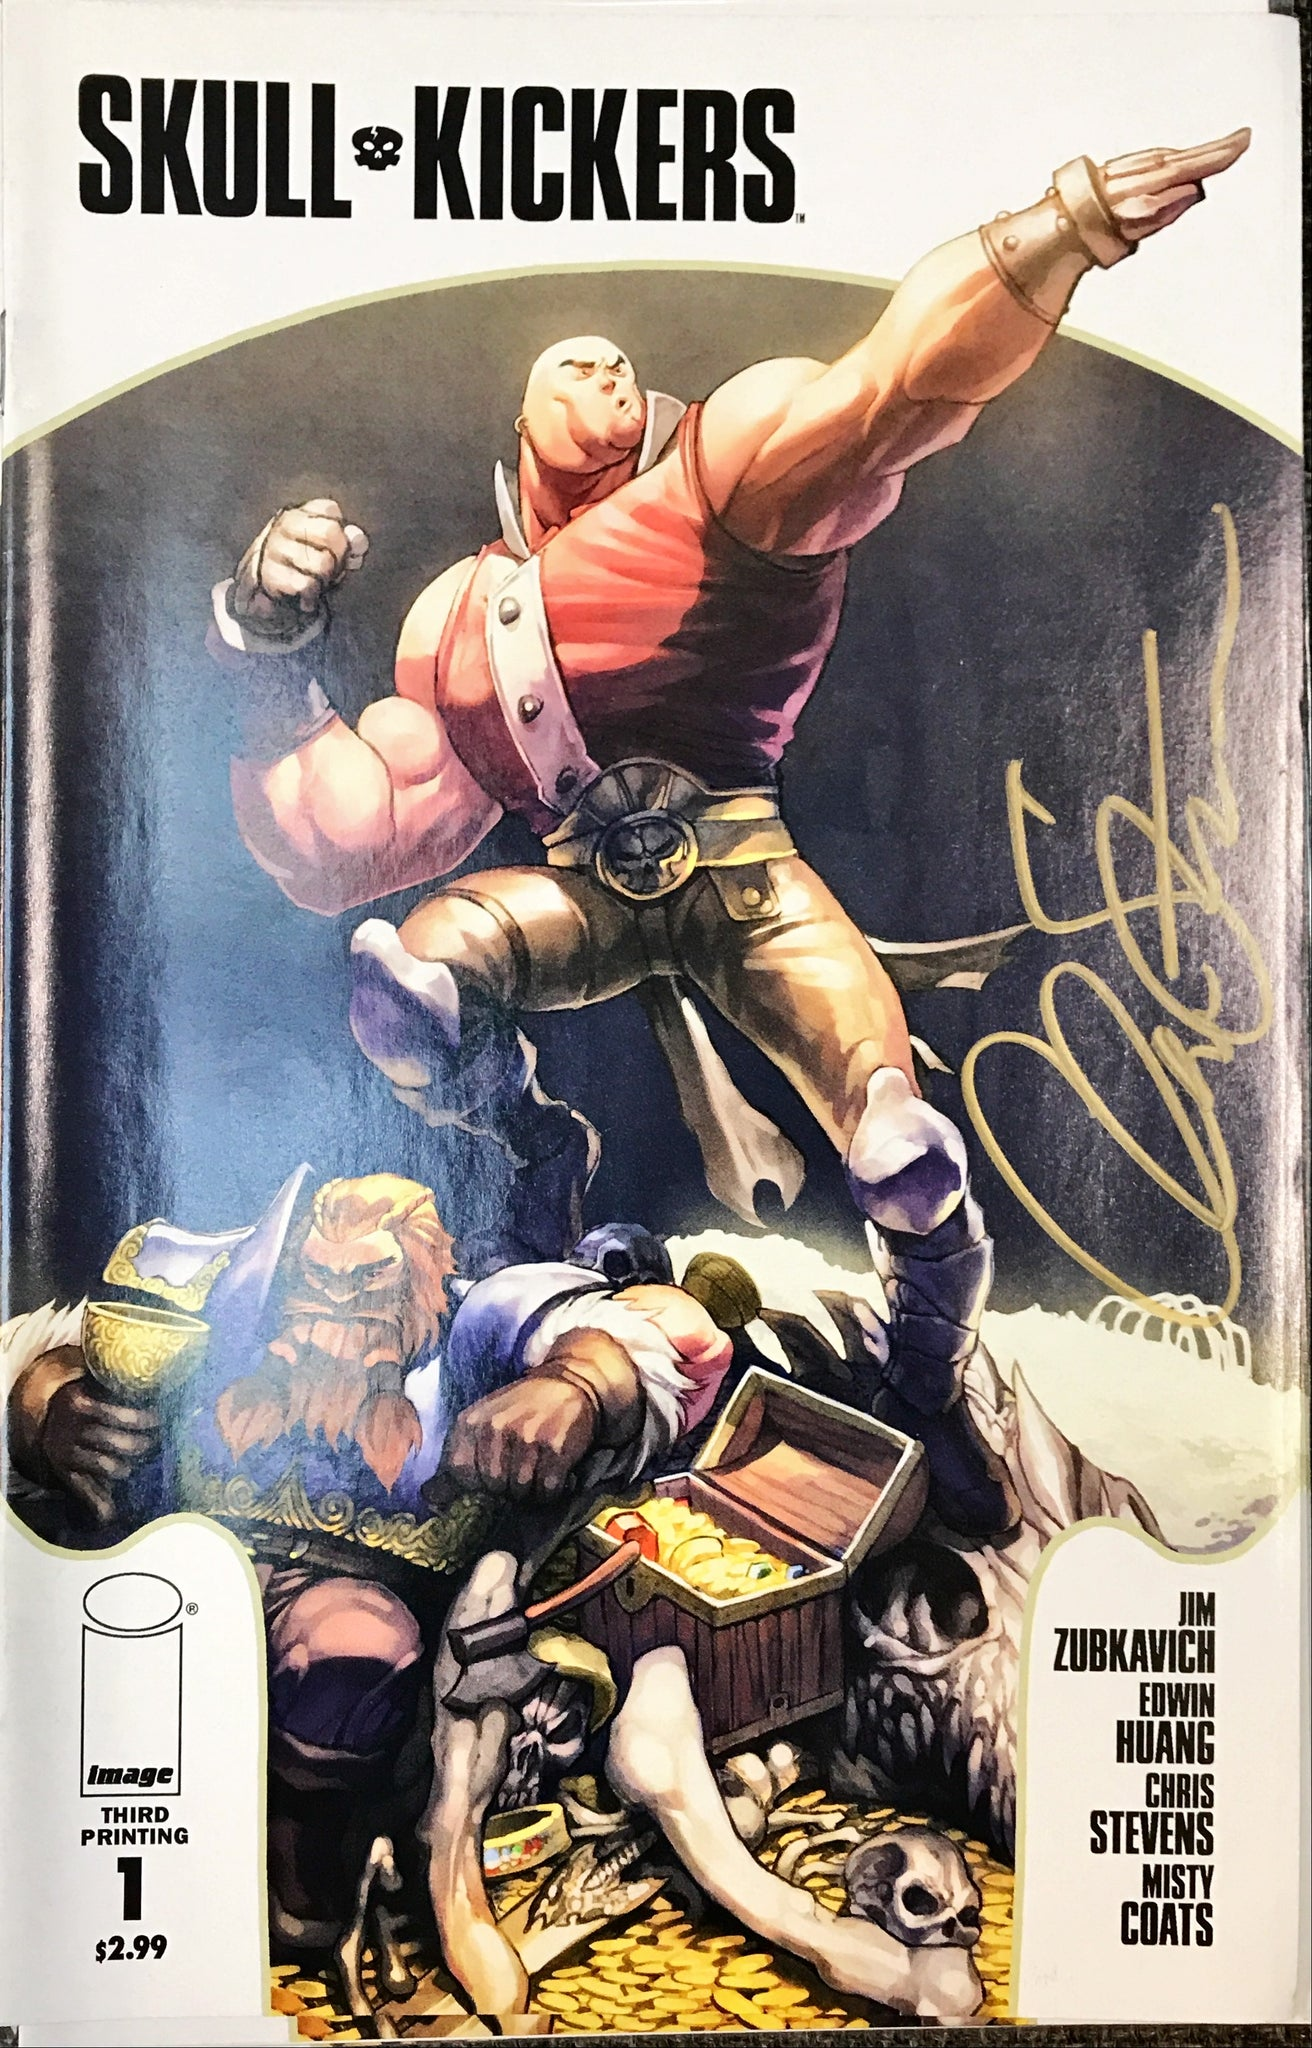 SKULLKICKERS #1 THIRD PRINTING SIGNED BY CHRIS STEVENS